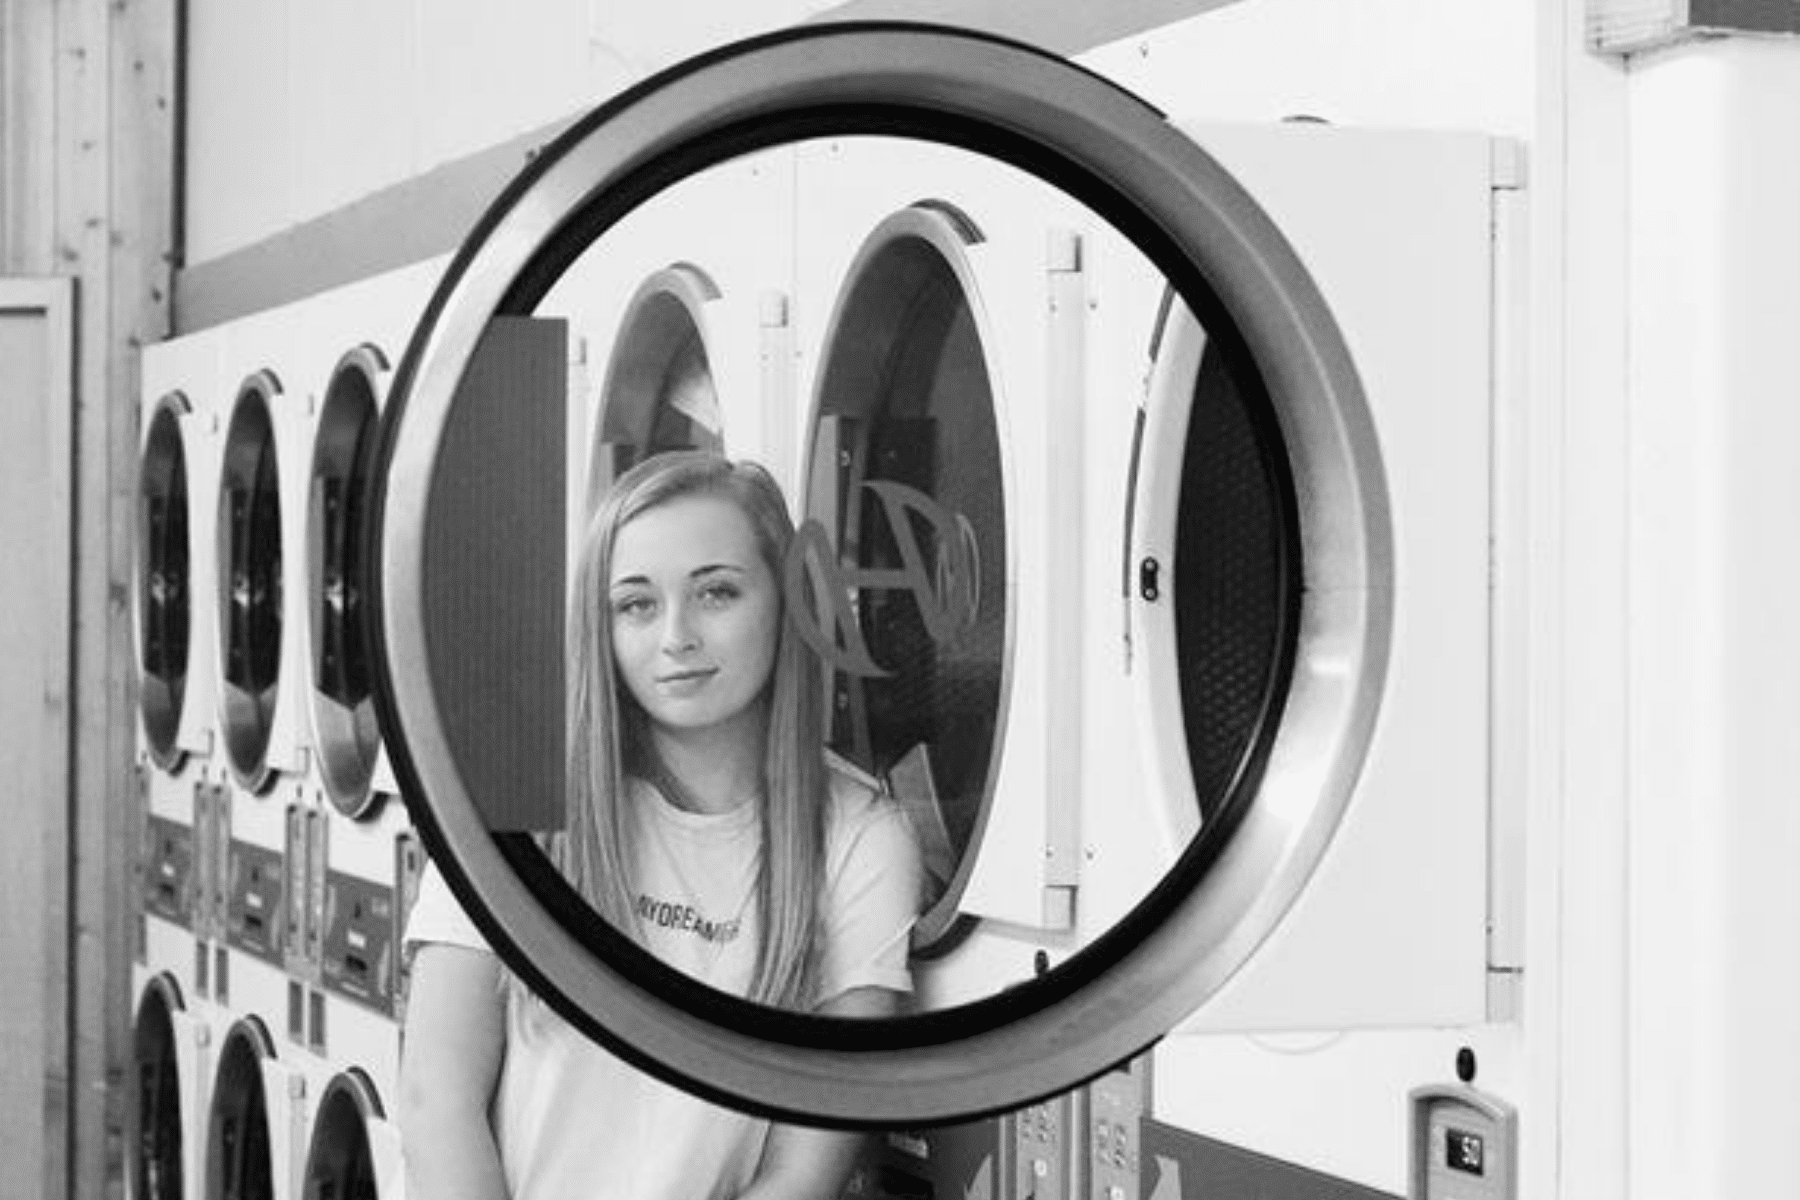 portrait of girl inside a laundromat standing next to dryer